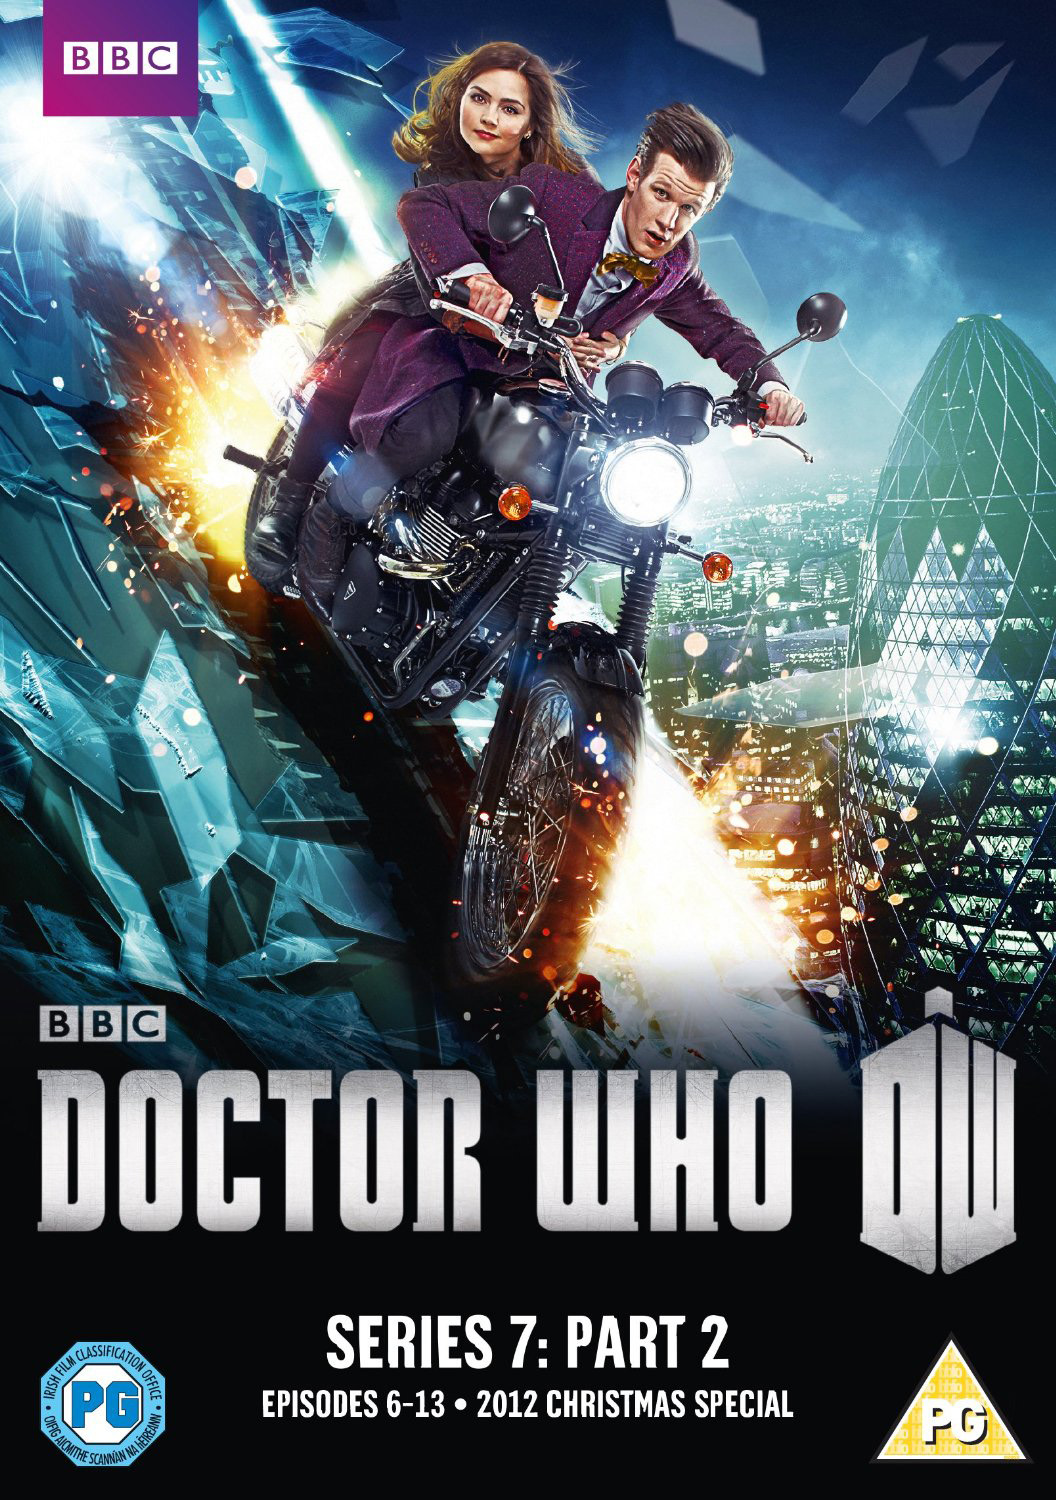 Series 7 Volume 2 DVD